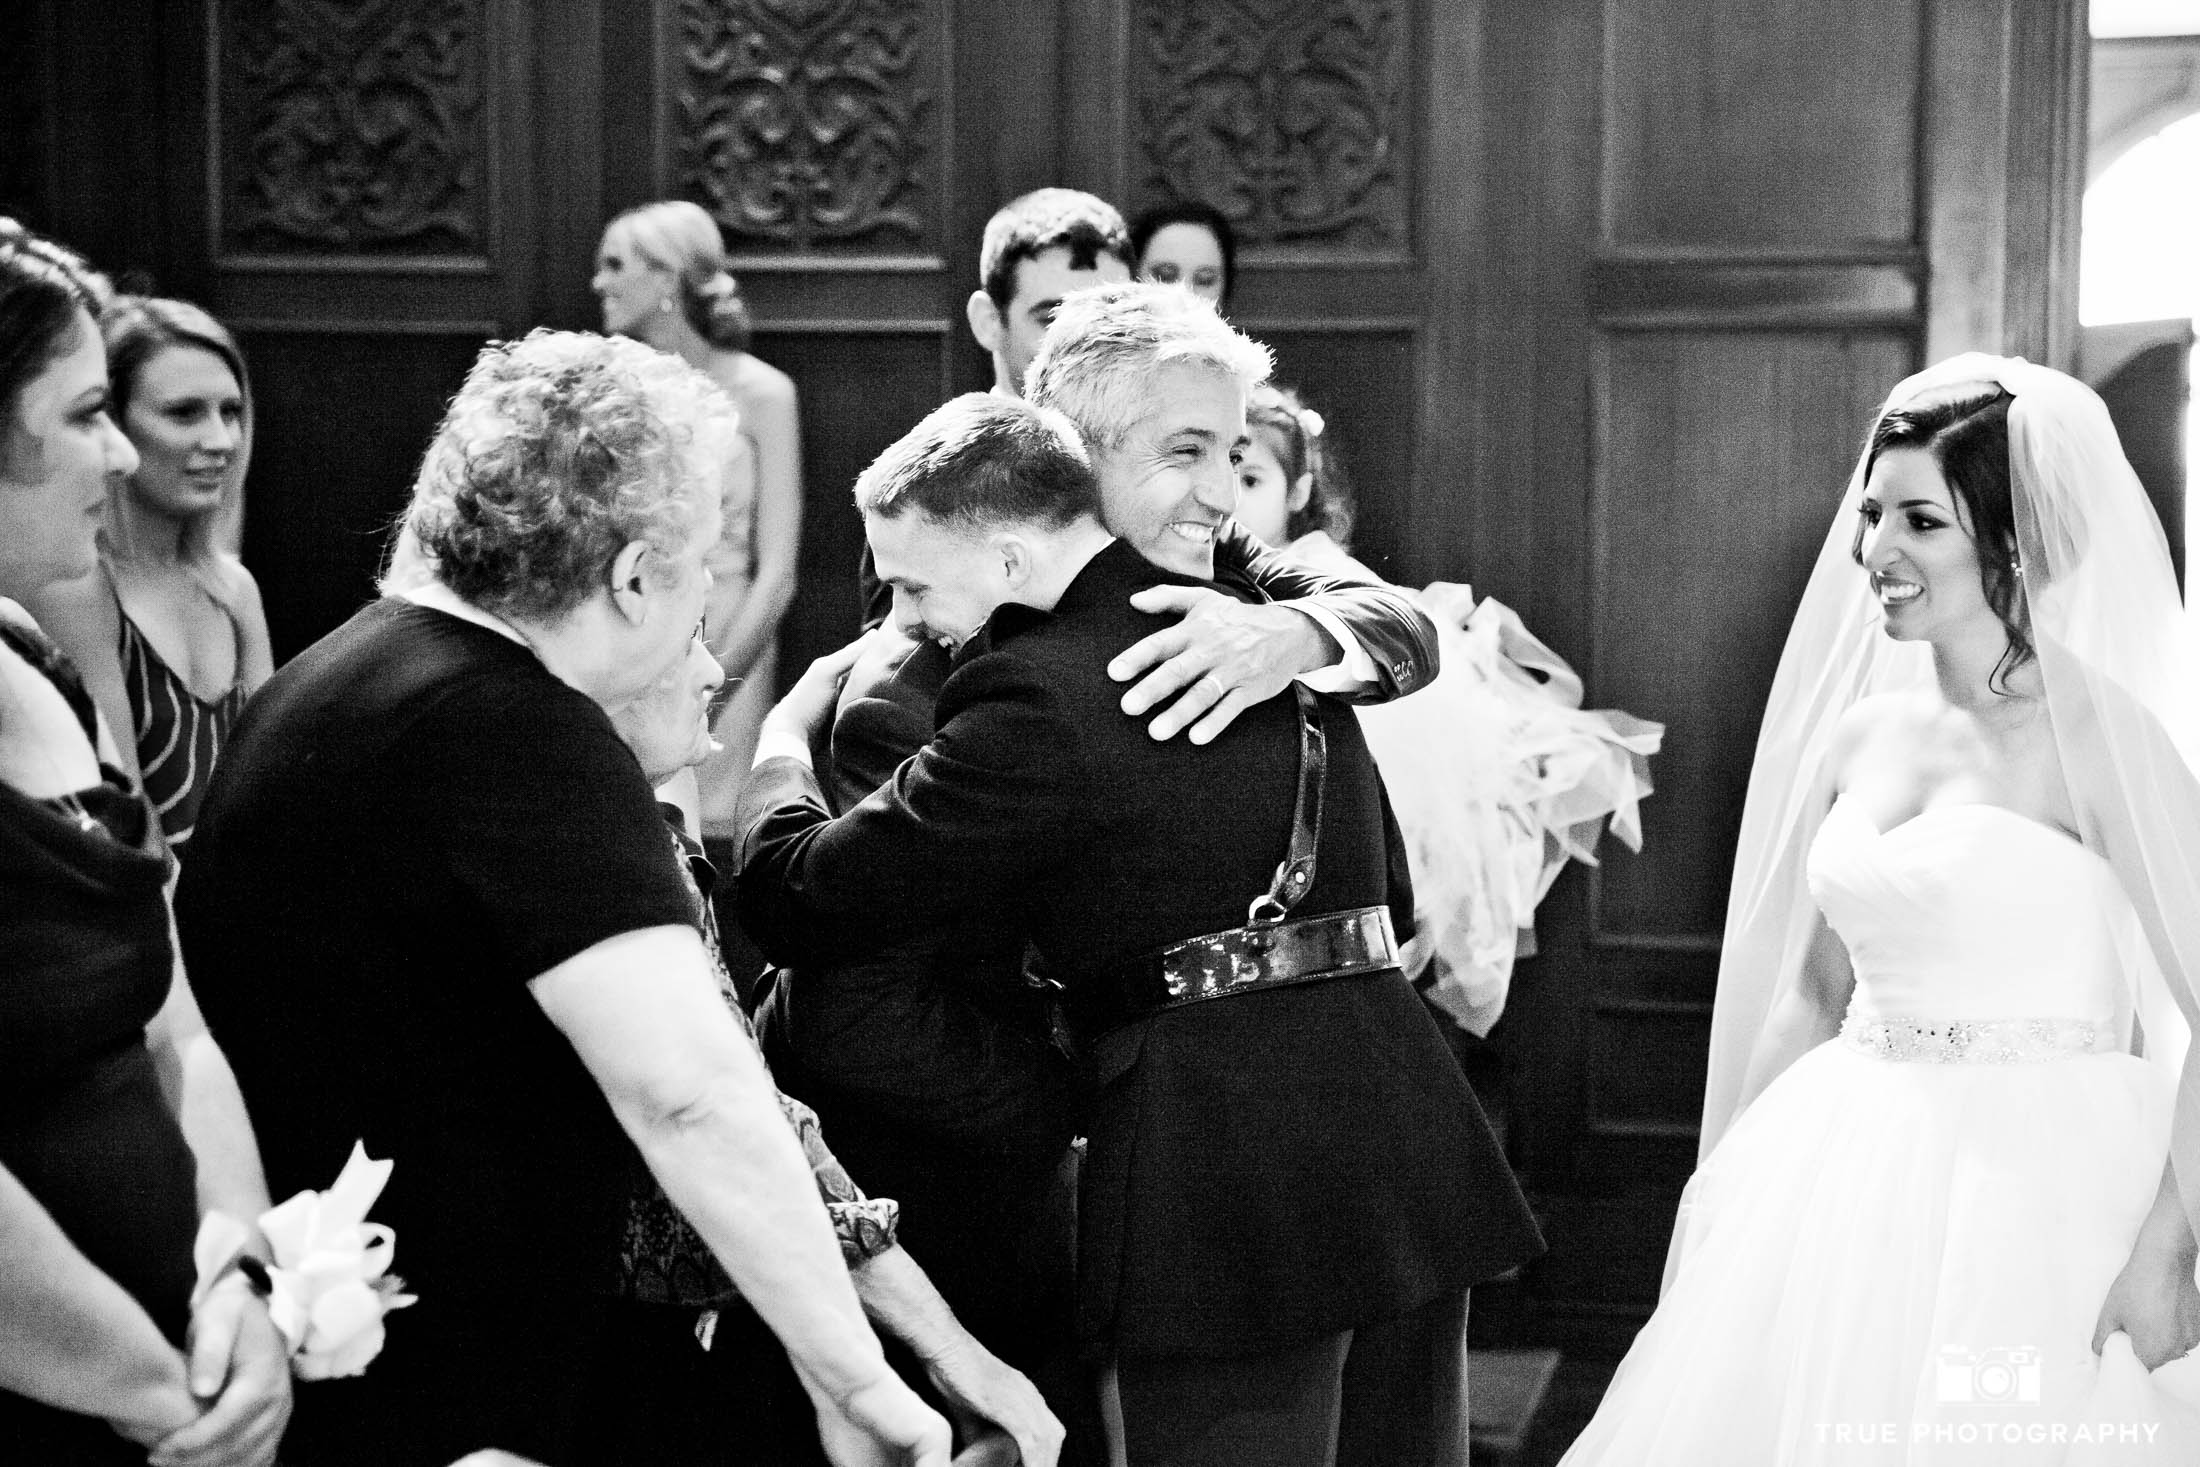 The Father of the bride hugs the groom during a ceremony at Founders Chapel at USD